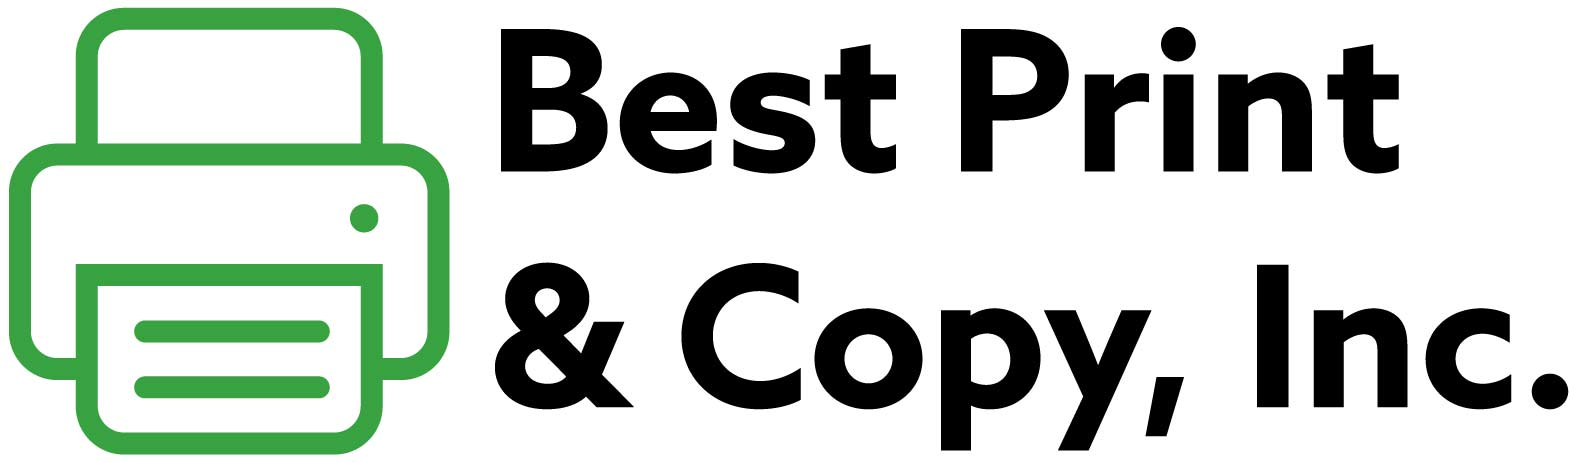 Best Print and Copy, Inc.